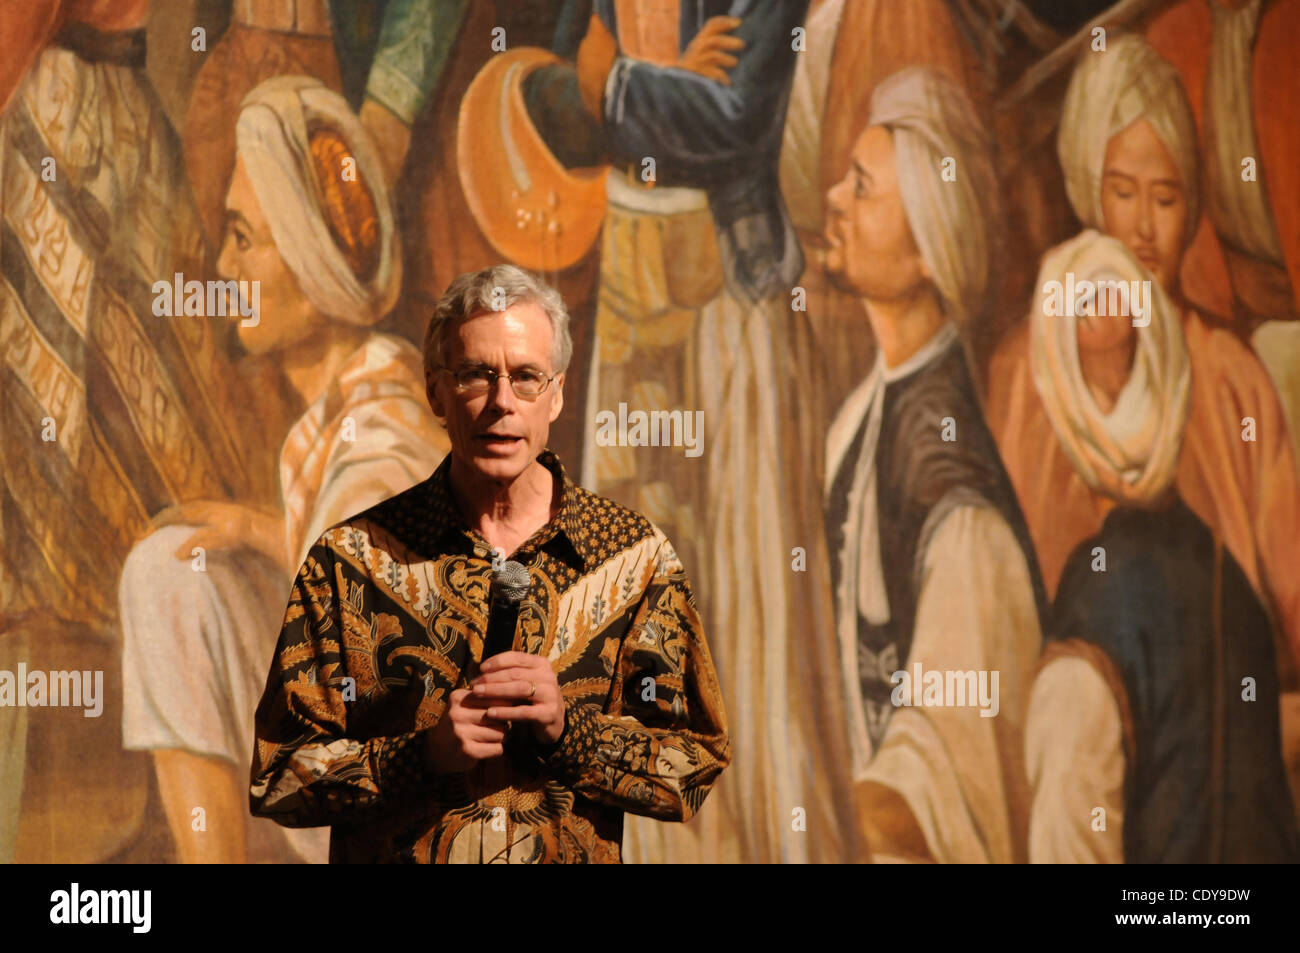 Nov. 10, 2011 - British Historian, PETER CAREY  speech  during   a Prince Diponegoro, Java War : 1825-0000 Opera - Stock Image